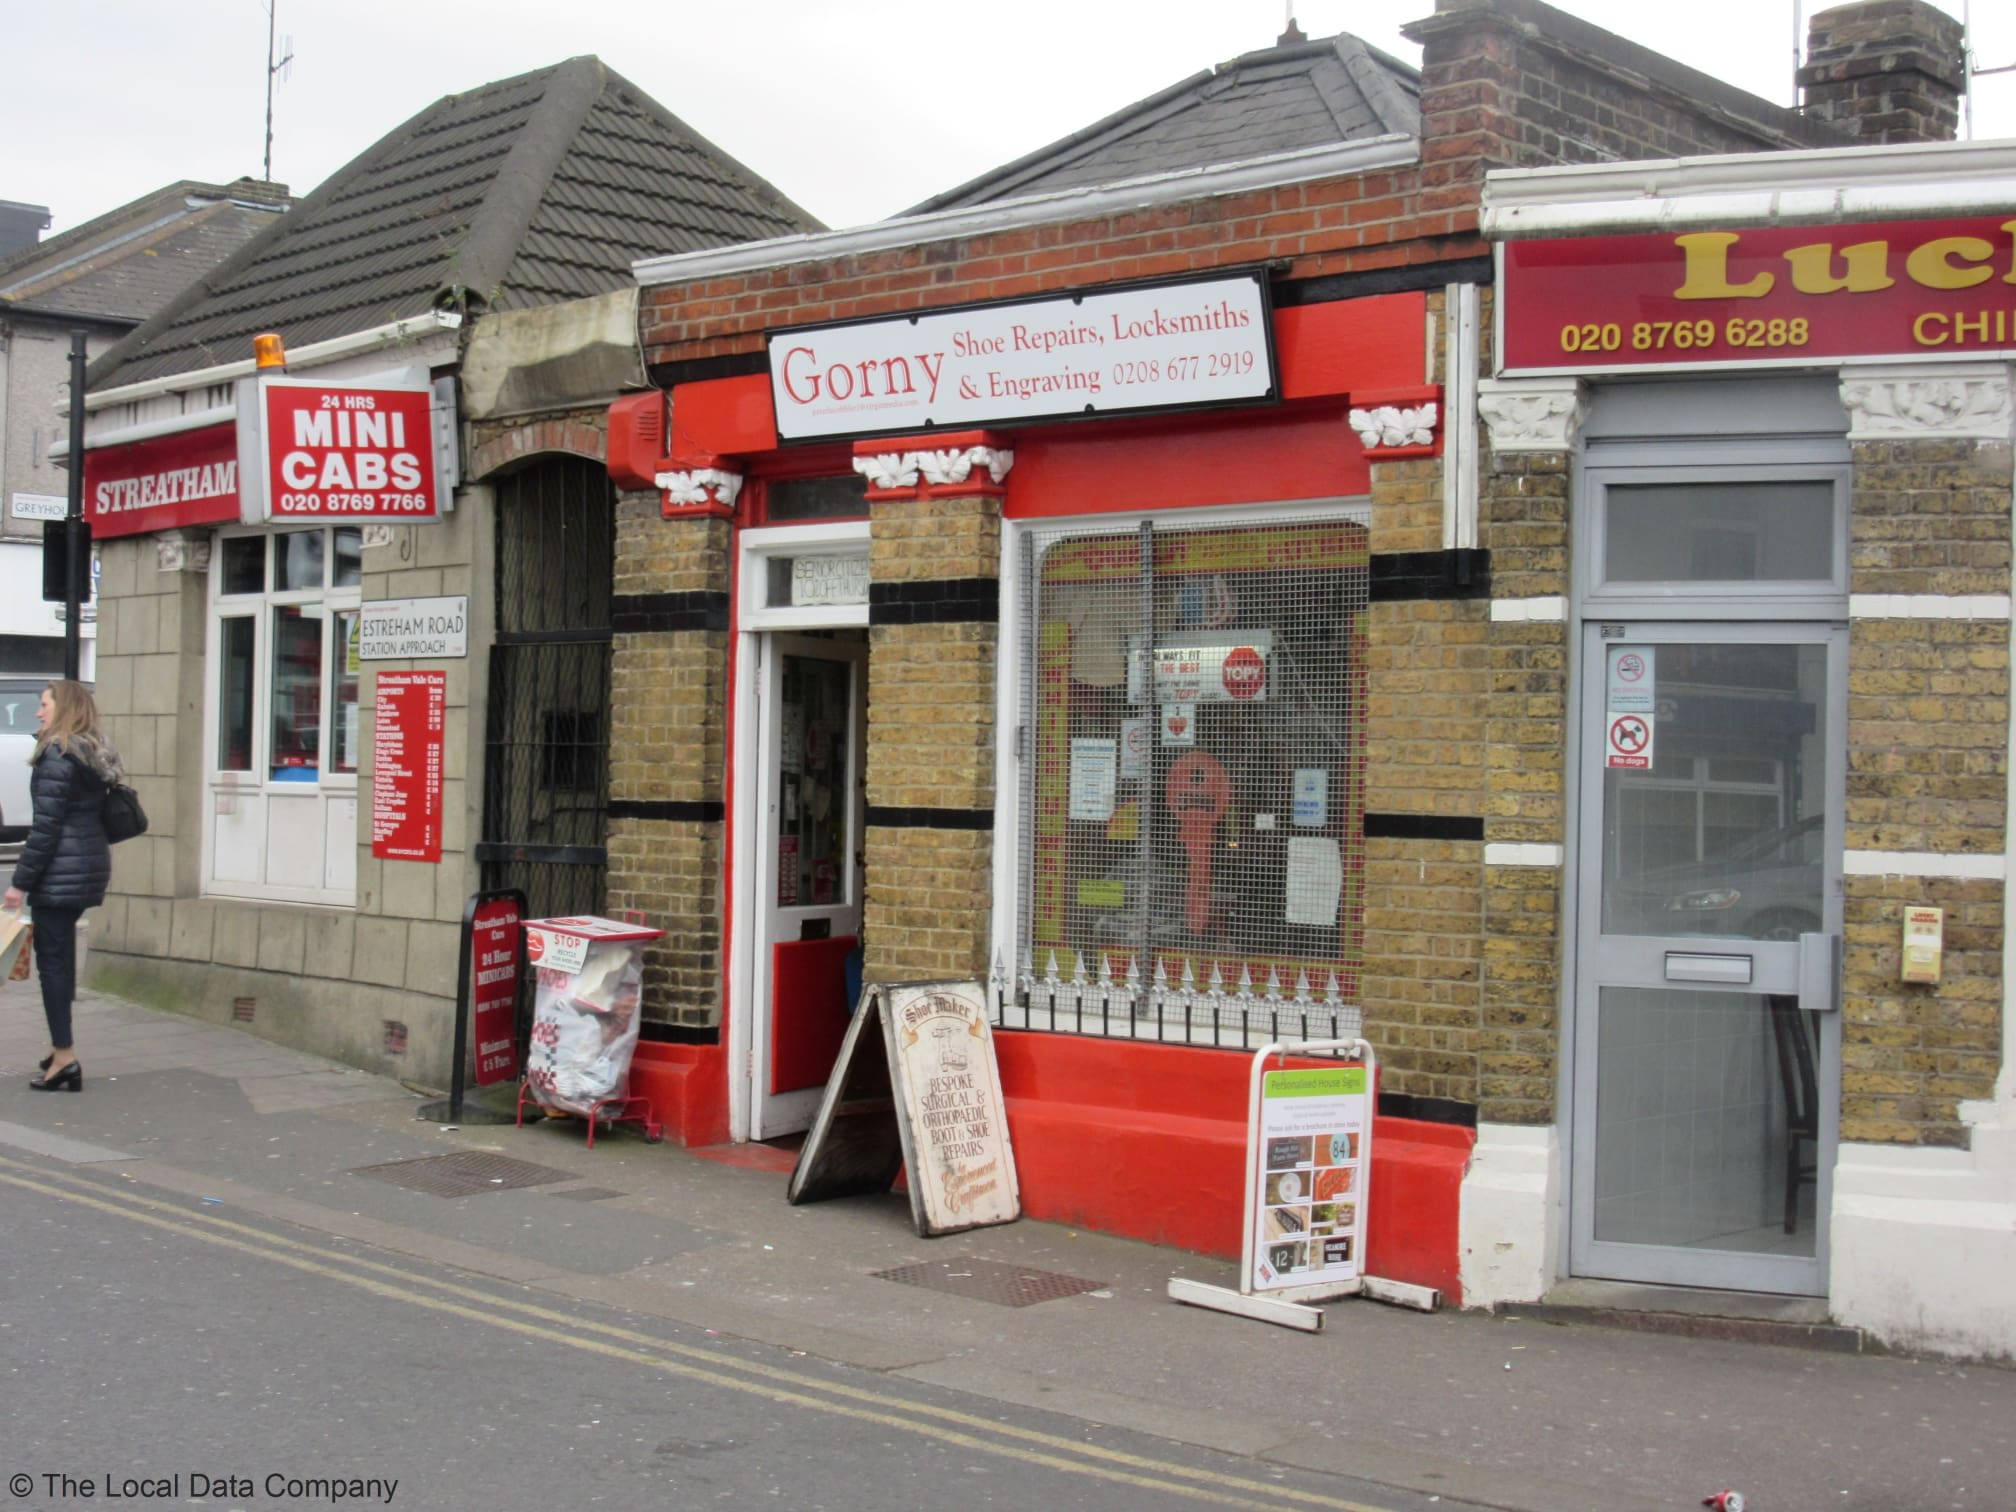 Shoe Repairs & Locksmiths & Engraving | 2 Streatham Common Station Approach, London SW16 5NR | +44 20 8677 2919